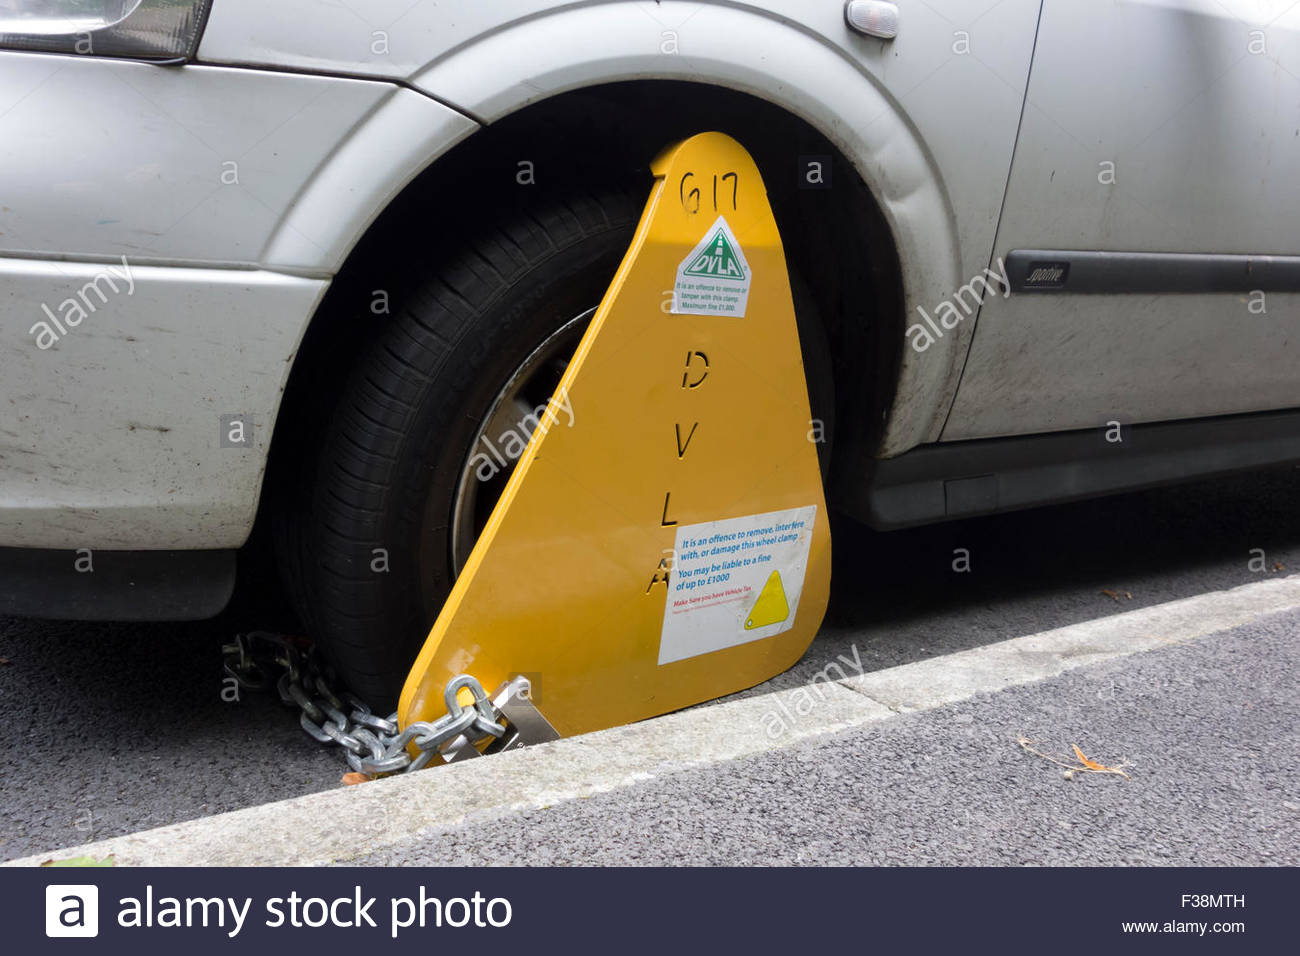 A DVLA wheel clamp on an untaxed vehicle on the streets of Sheffield, England, UK Stock Photo